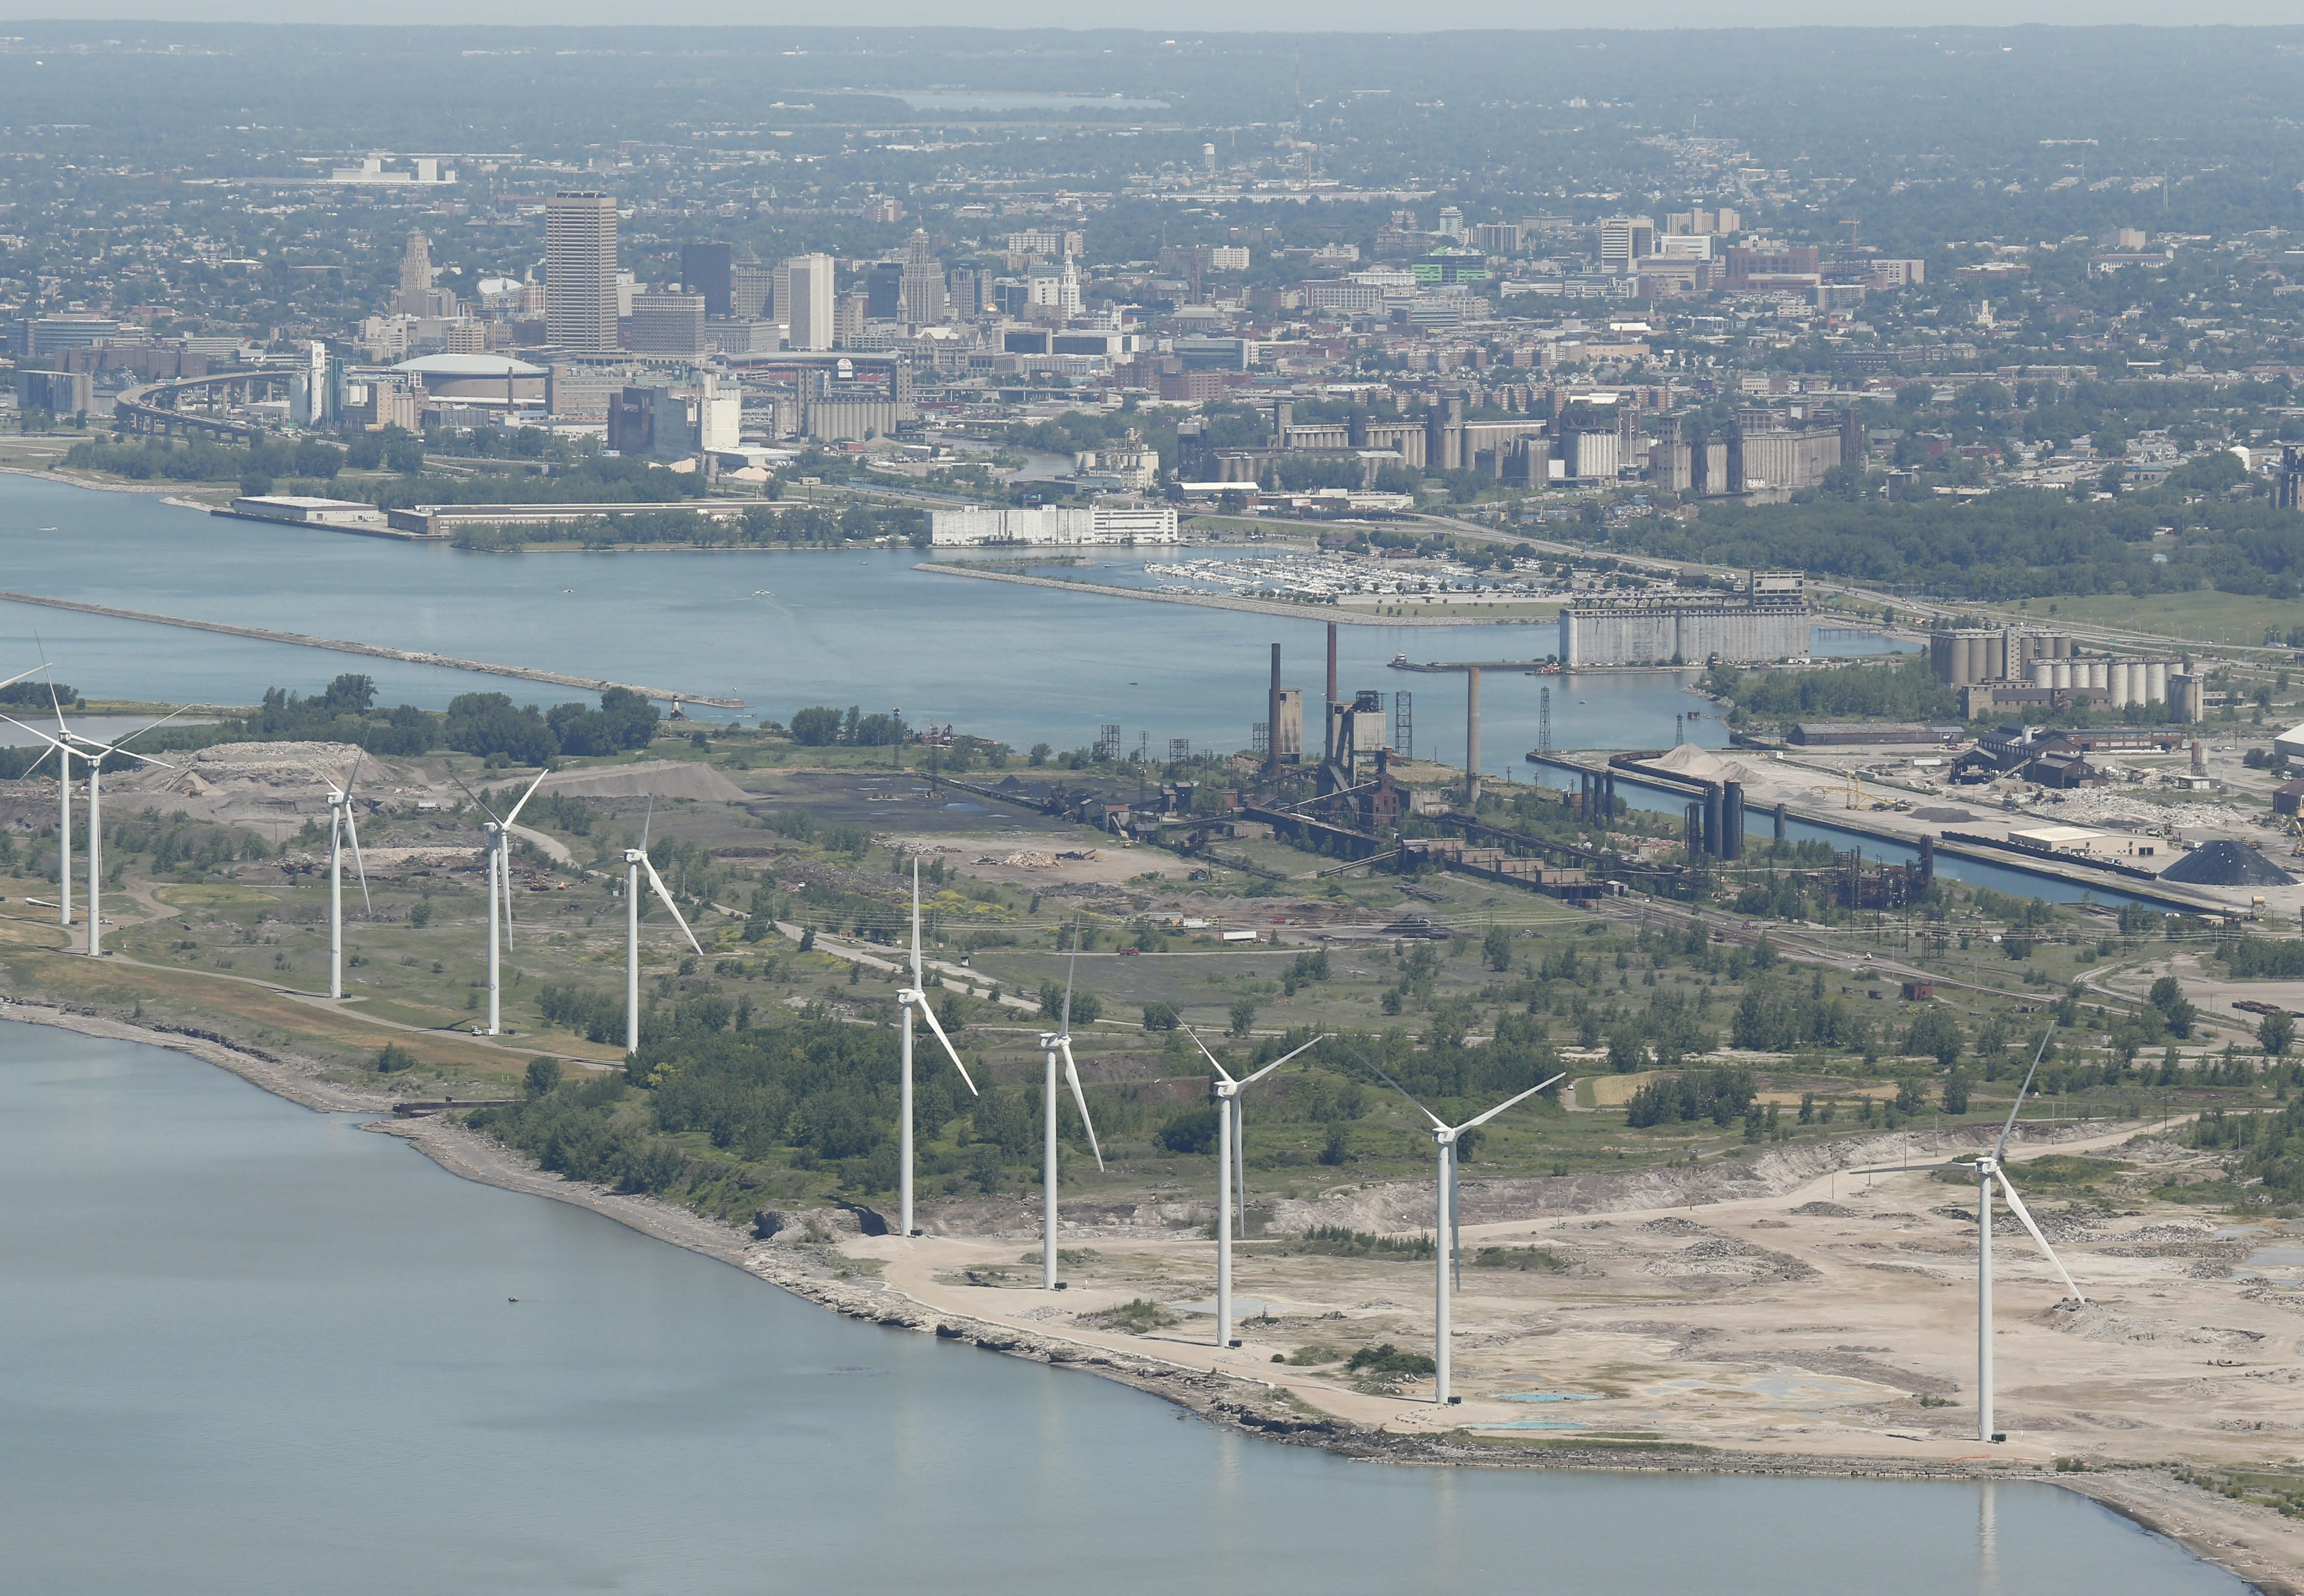 Installation of solar panels is expected to begin this fall at the Steel Winds wind farm on the former Bethlehem Steel site.